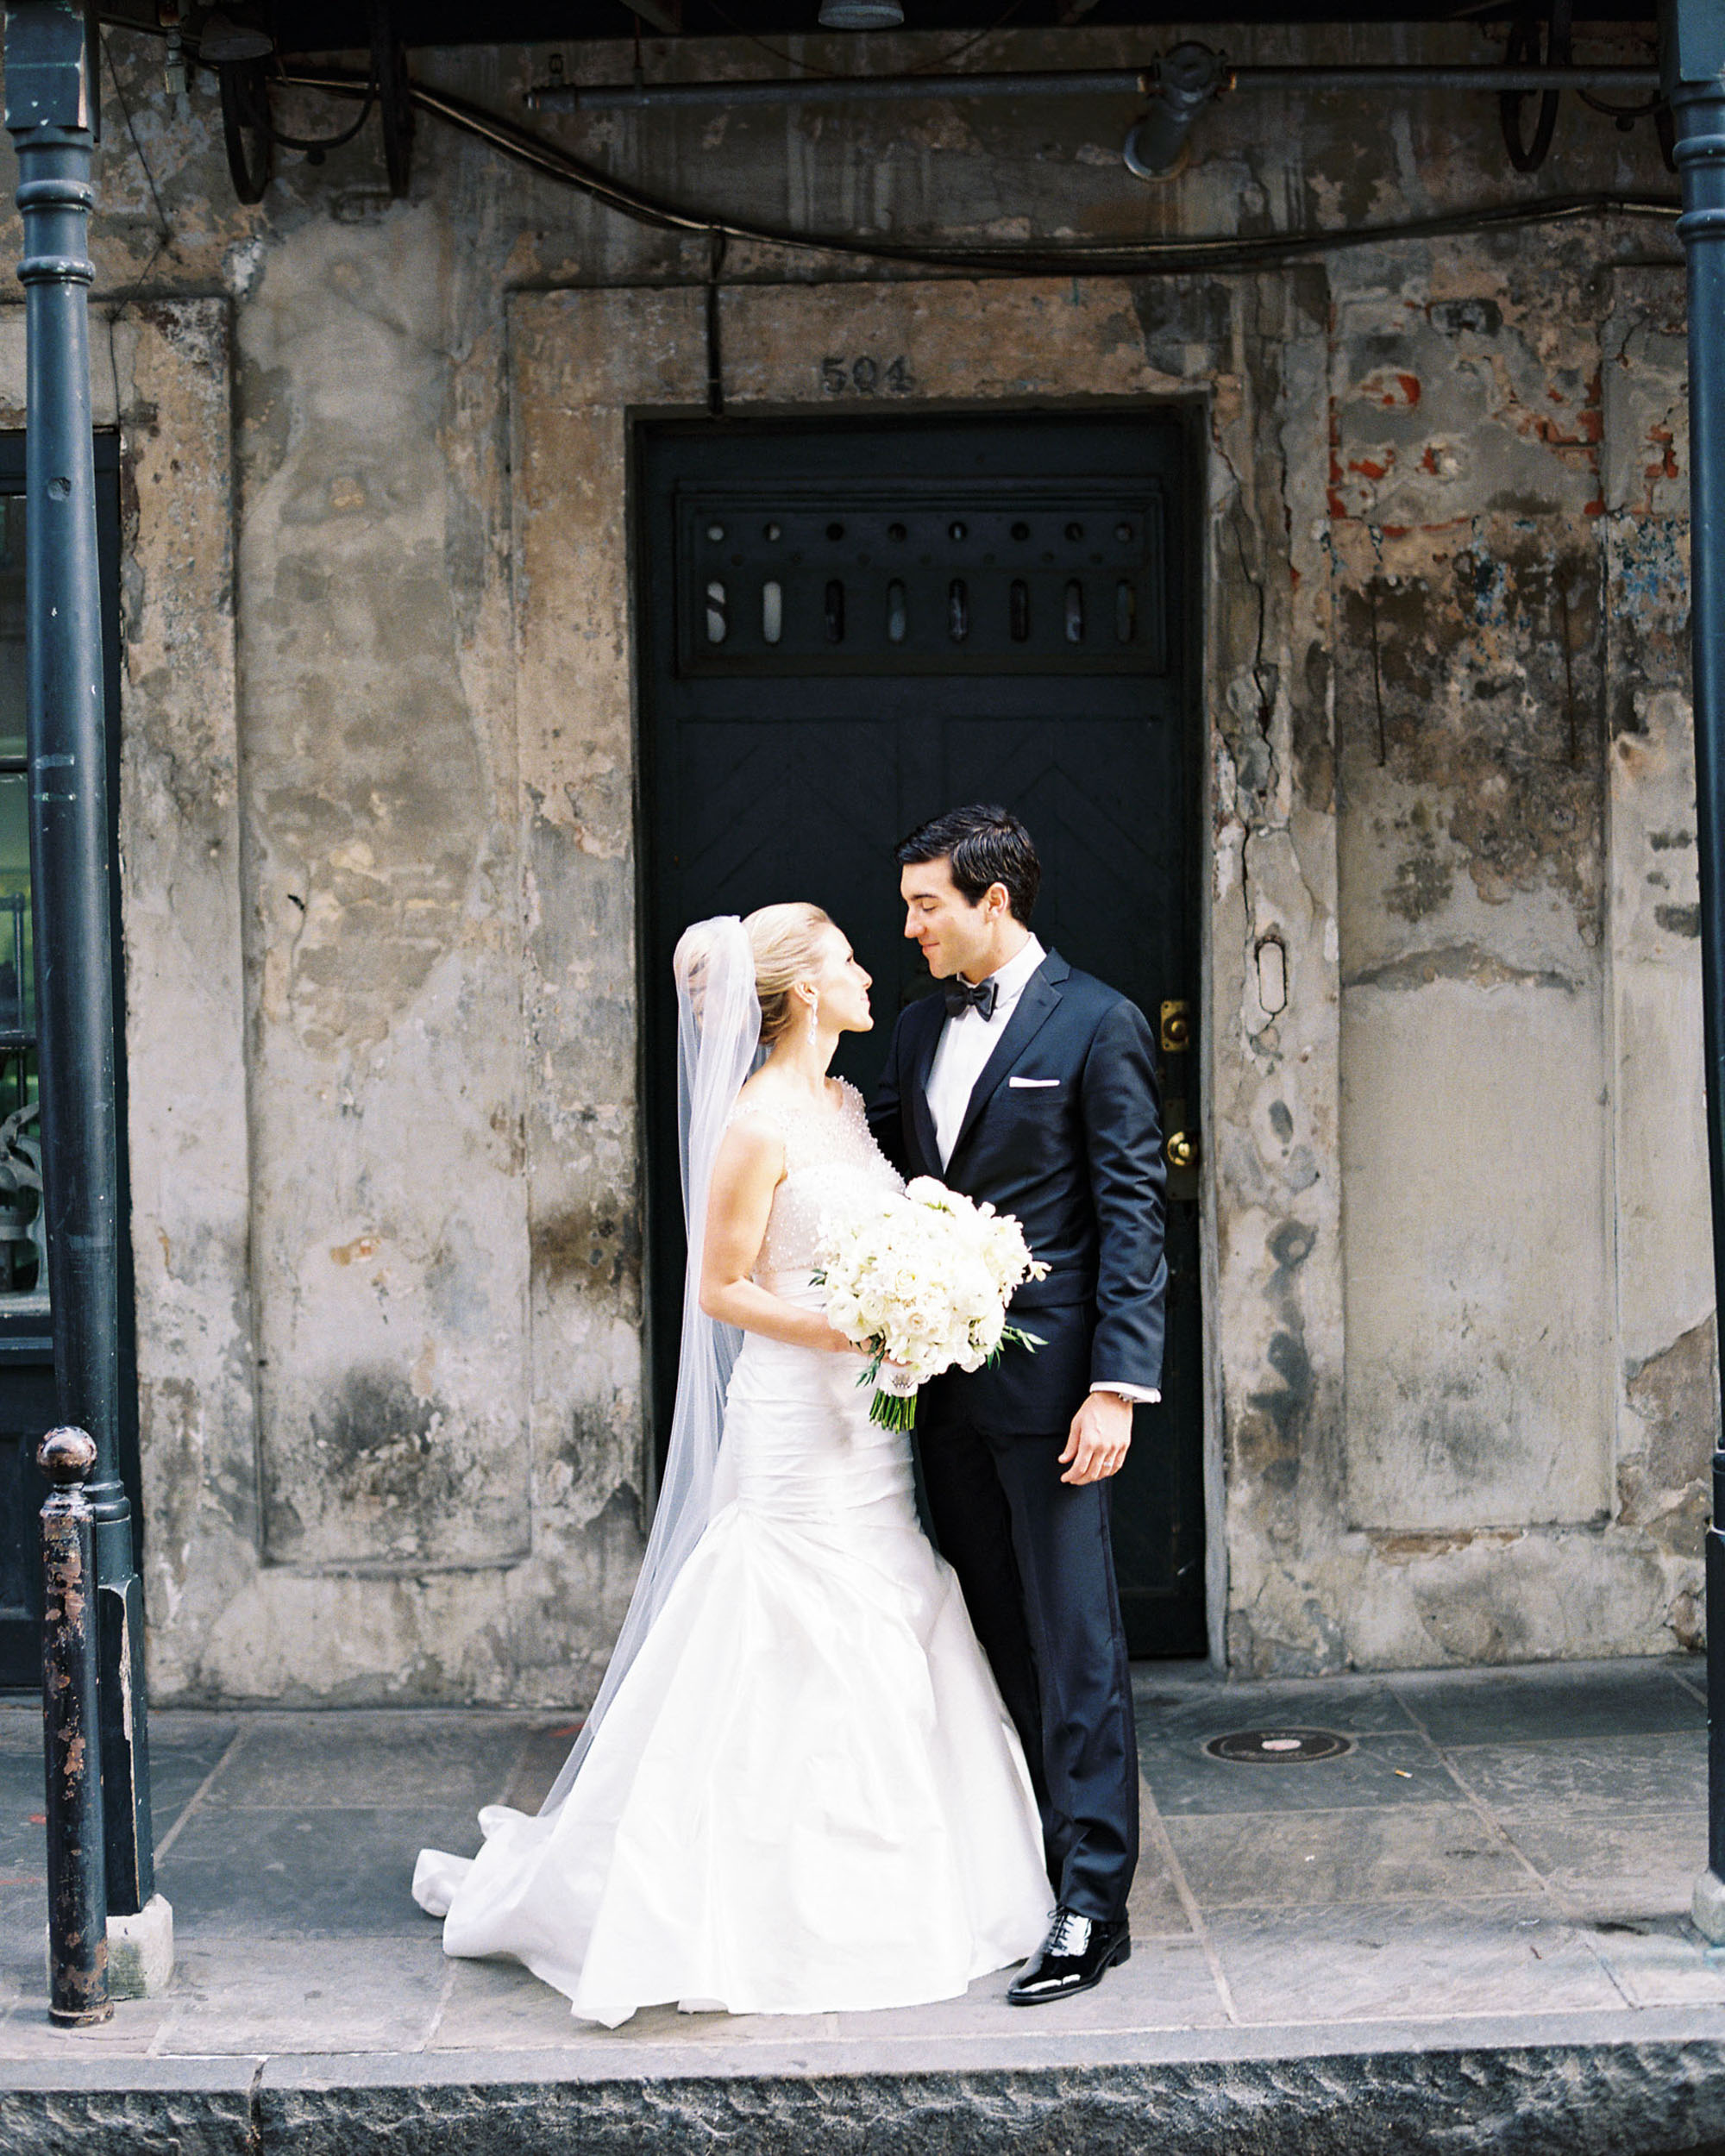 New Orleans Wedding Photographer 0019 - New Orleans